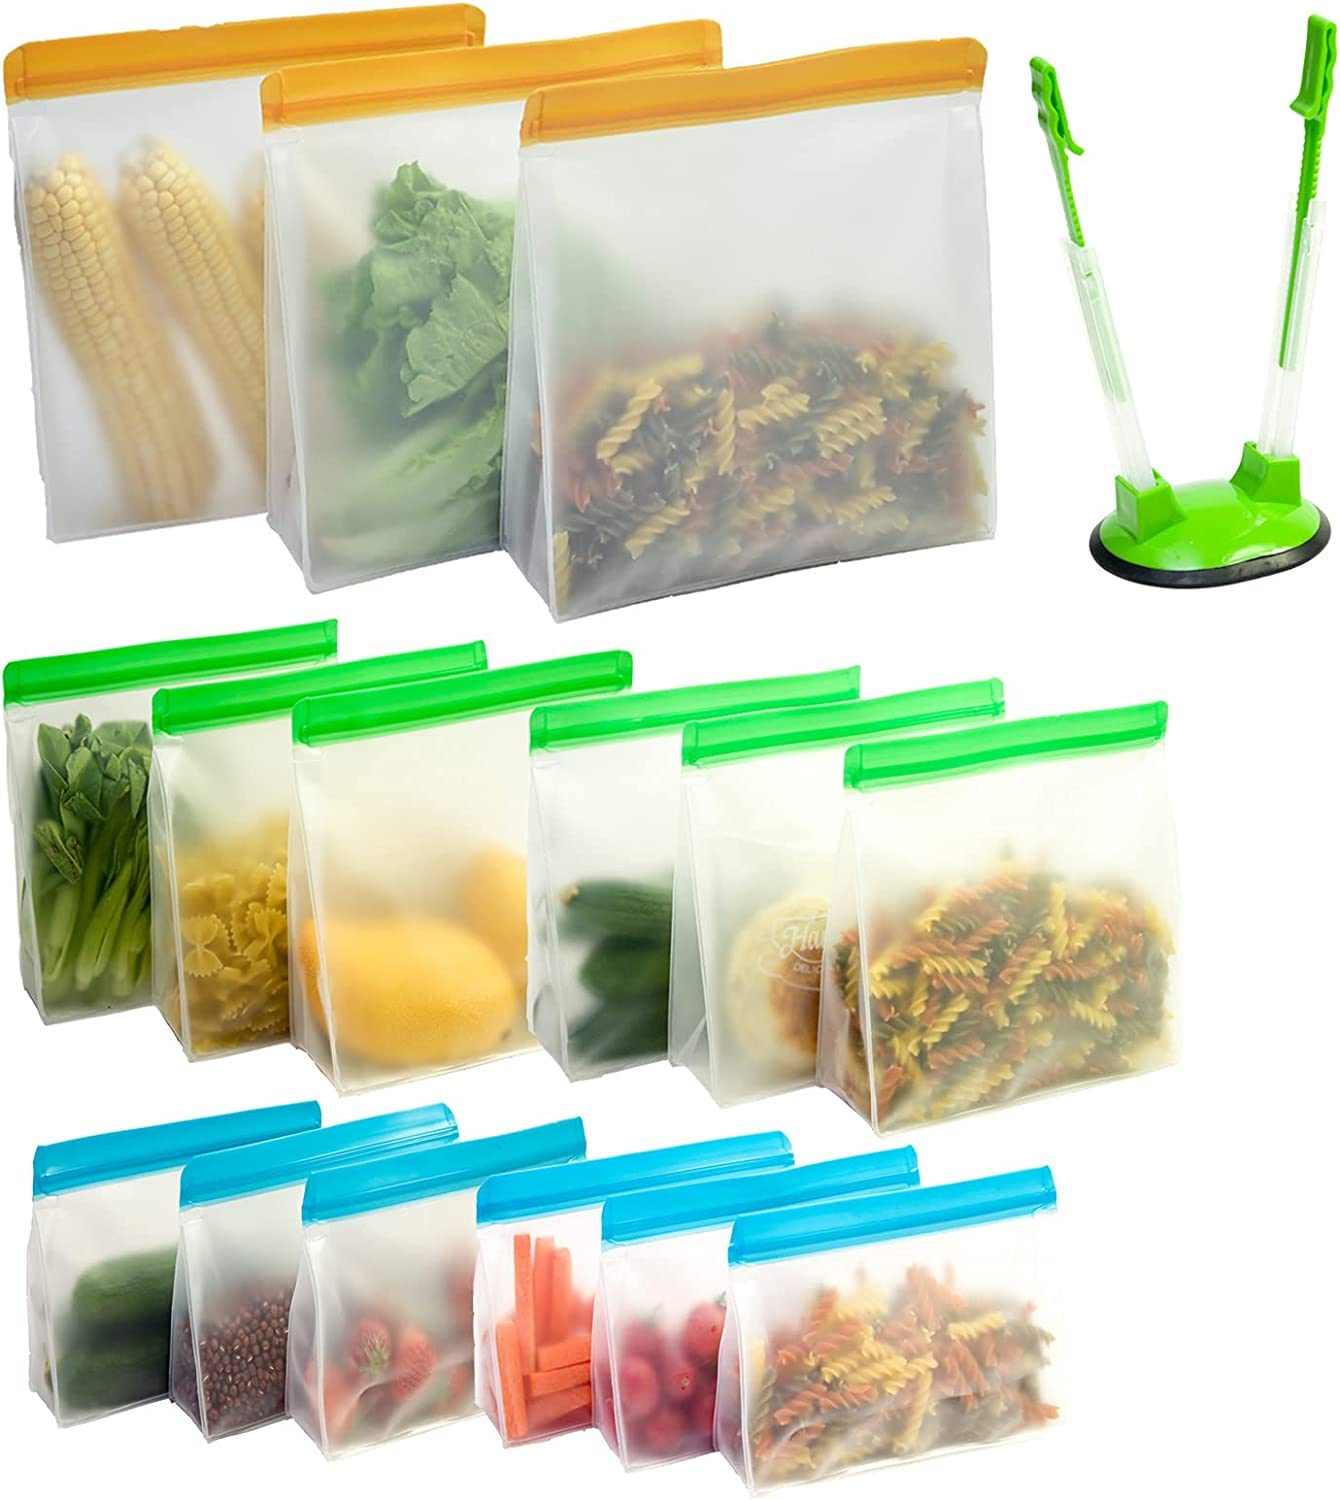 Stand Up Reusable Food Storage Bags 15 Pack Leakproof Silicone Bags Reusable Freezer Bags Zip Lock (3 Large Gallon Bags+6 Sandwich Bags+6 Snack Bags+Baggy Rack Holder) Bolsas Reutilizables De Silicona